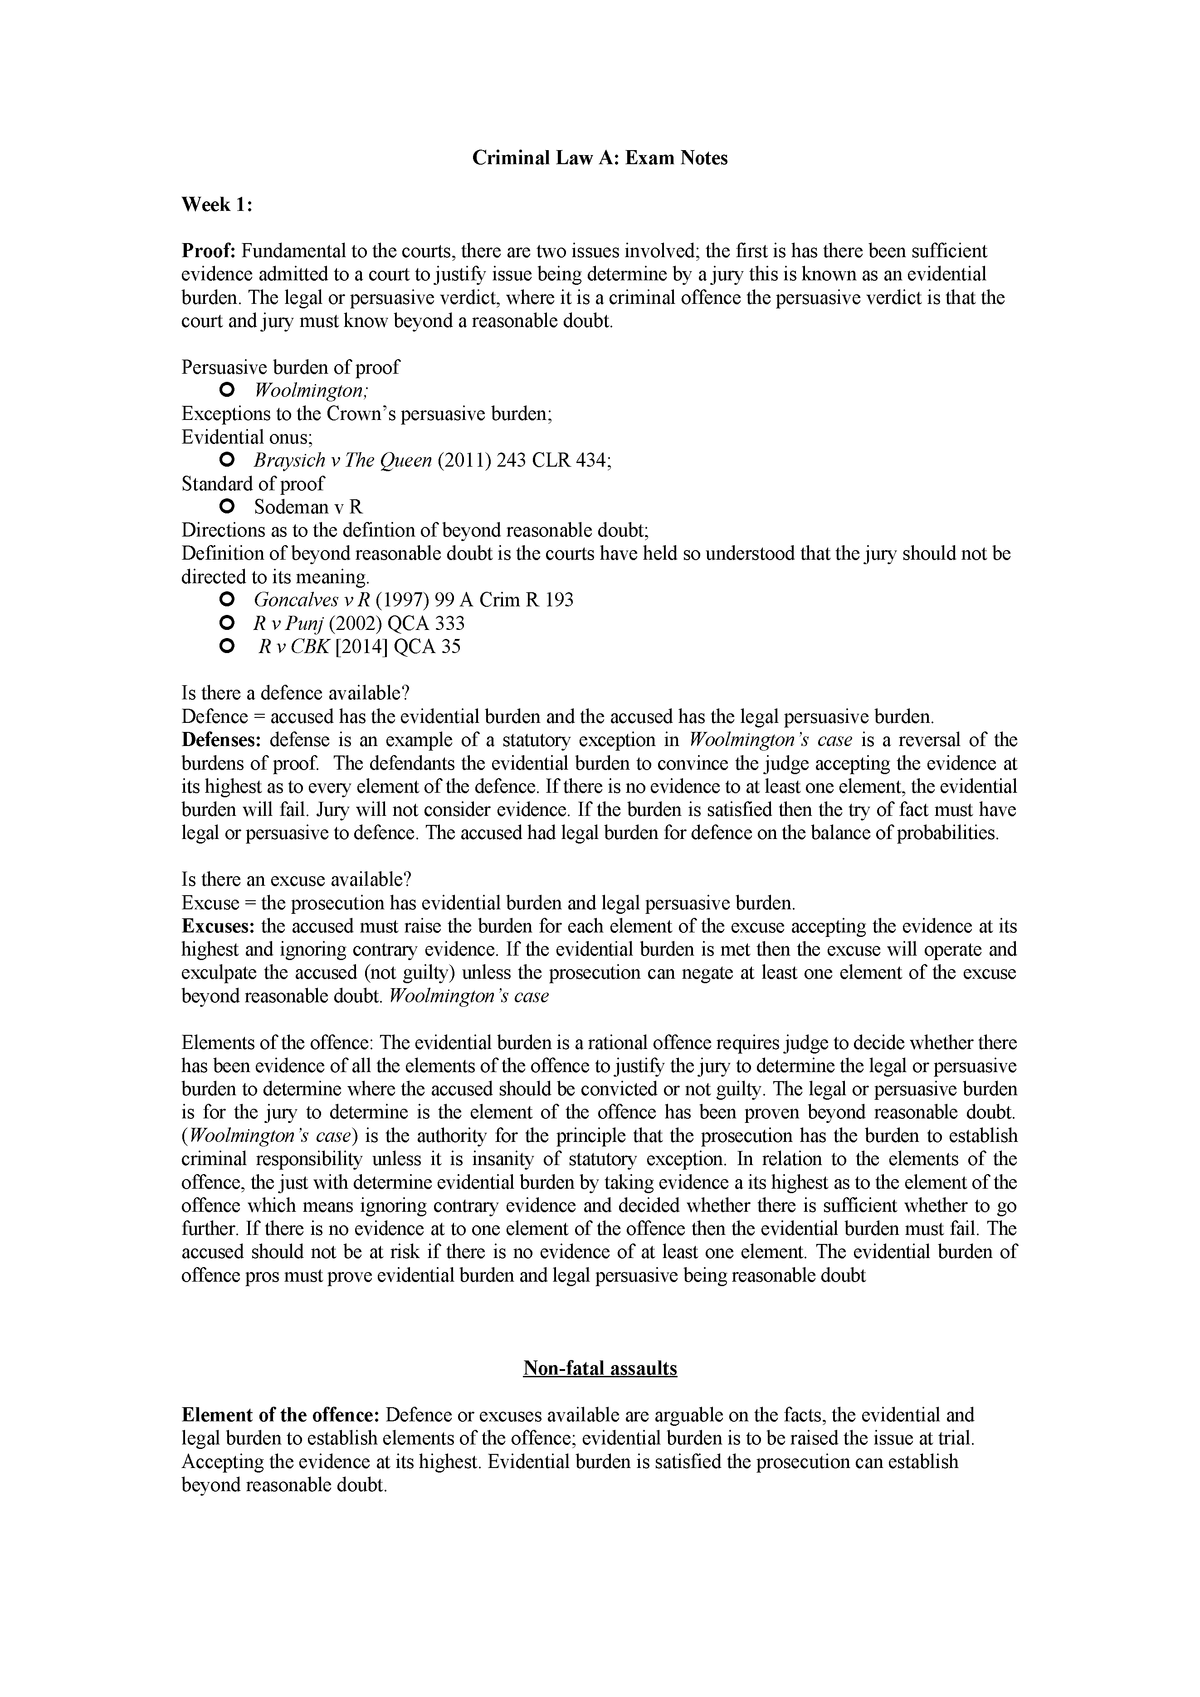 Criminal Law A Exam Notes - Lecture Notes, Lectures Week 1 - 12